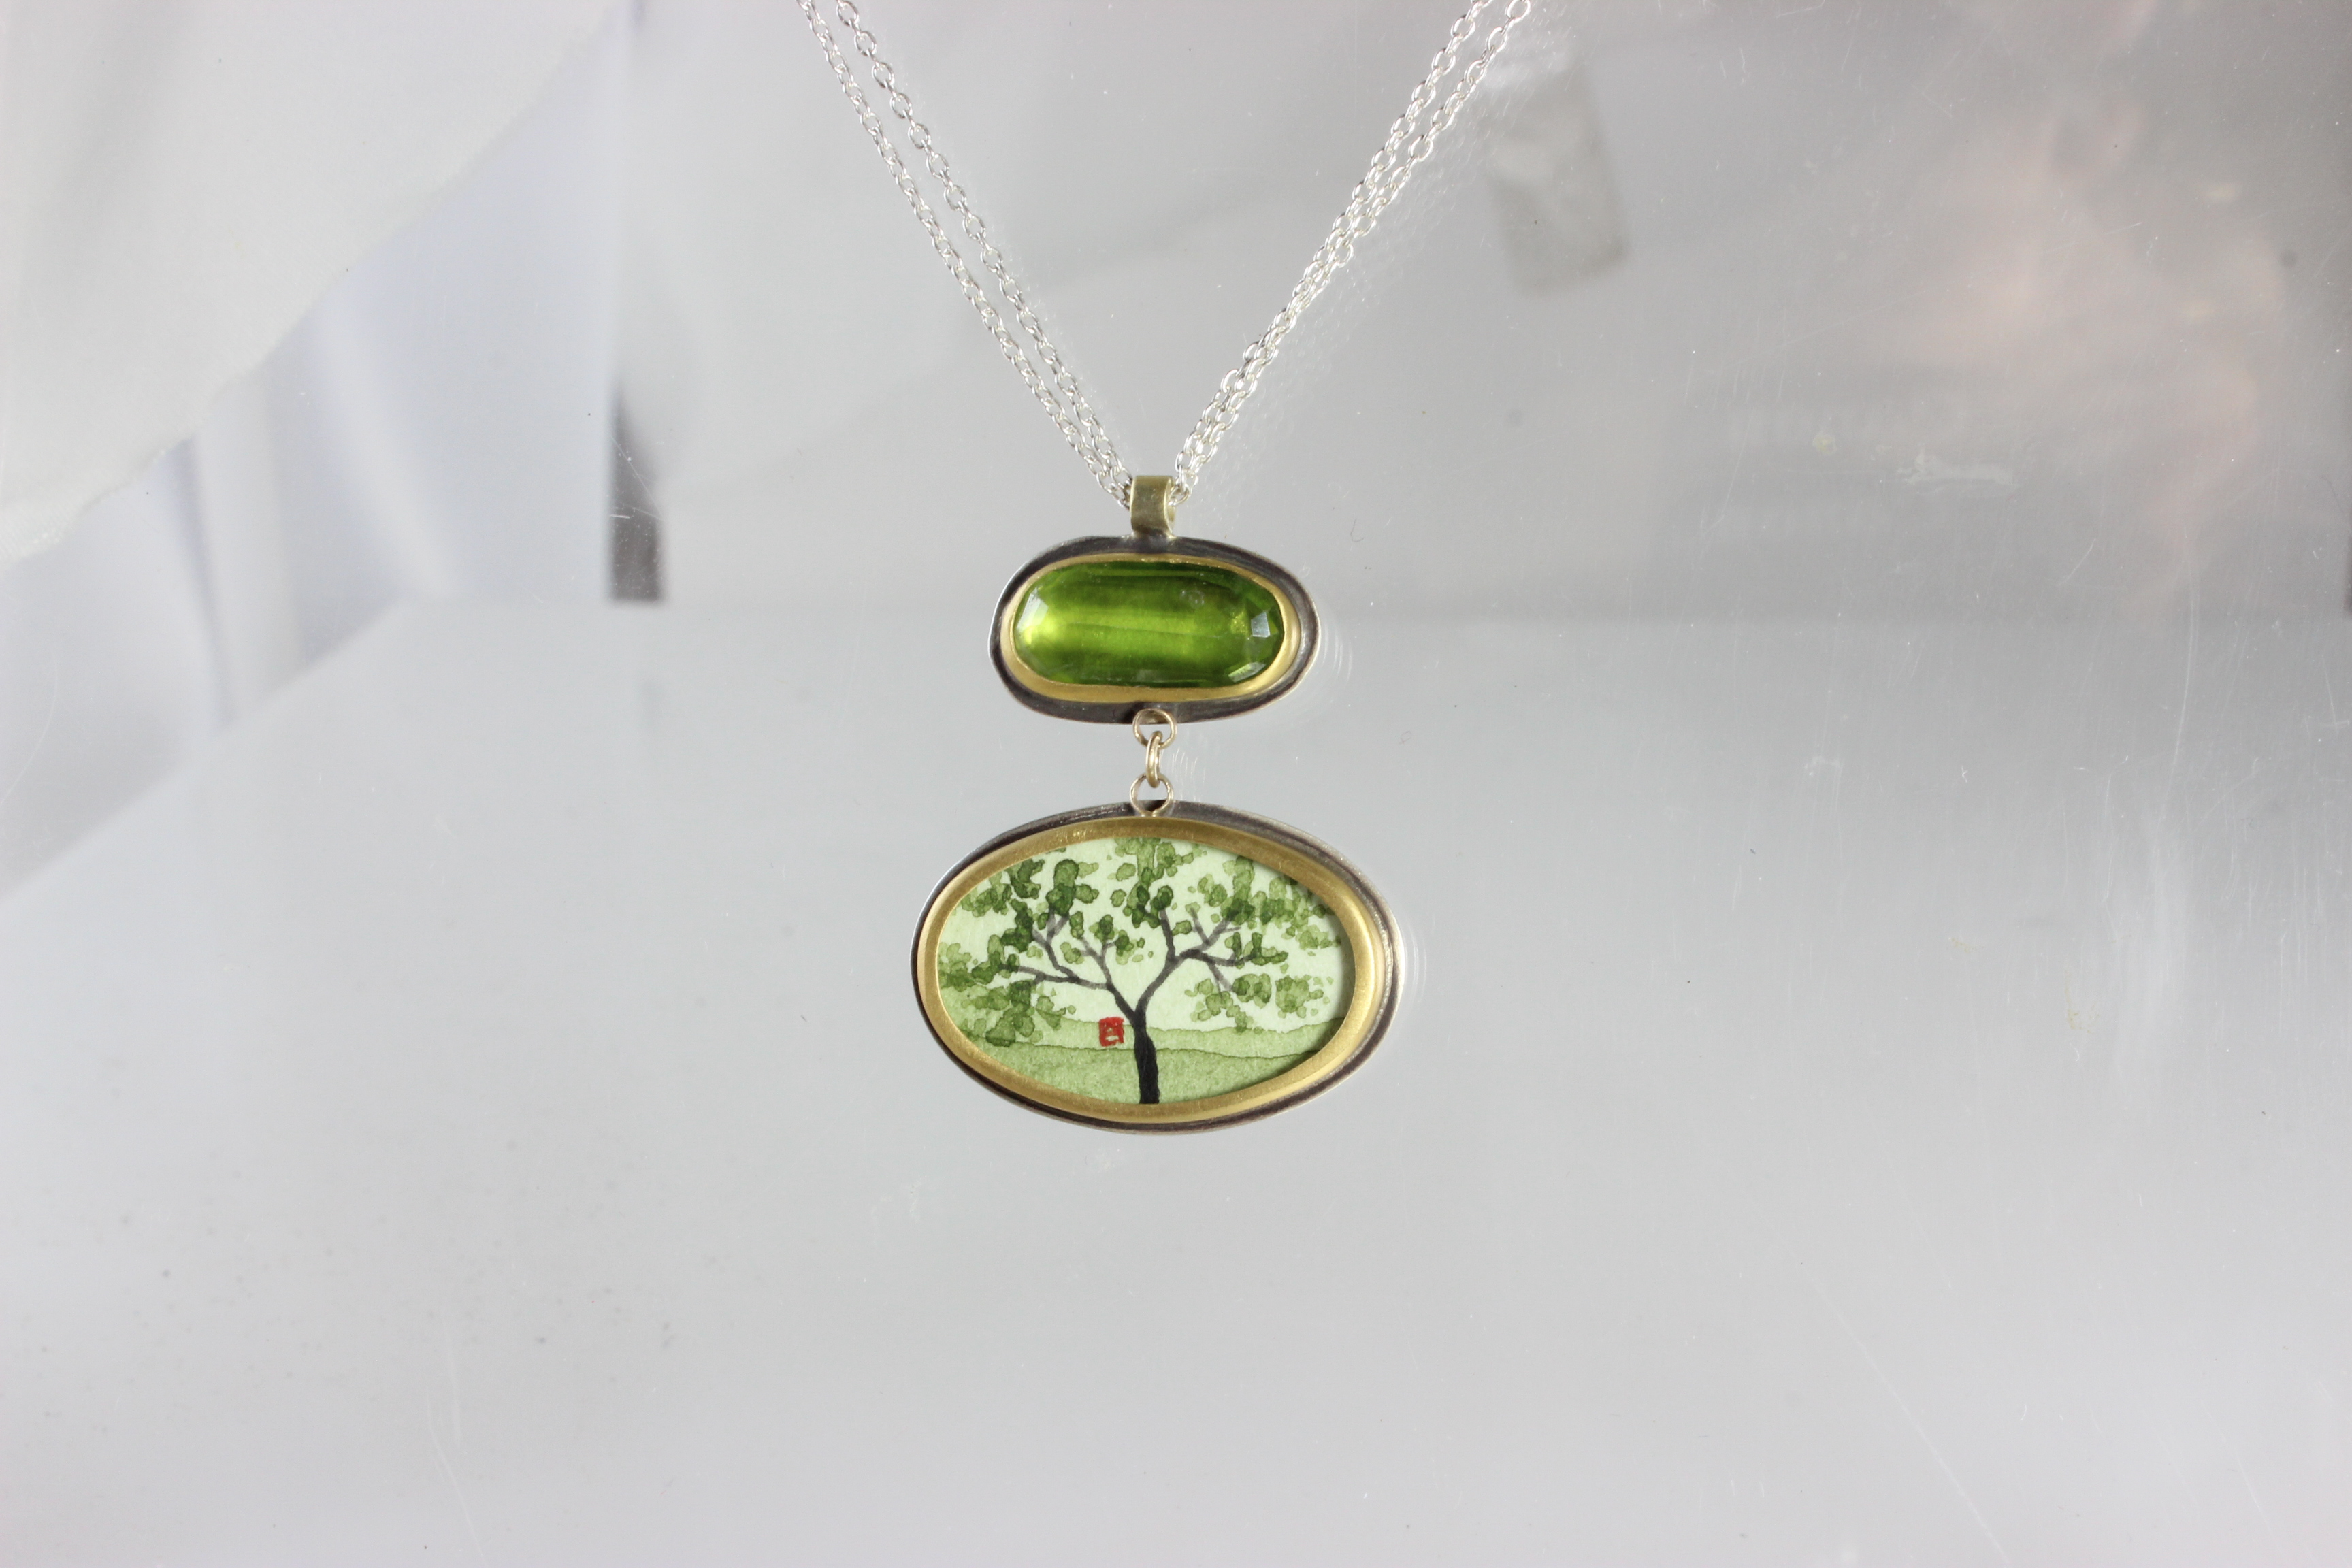 Khalsa Necklace with Japanese Maple